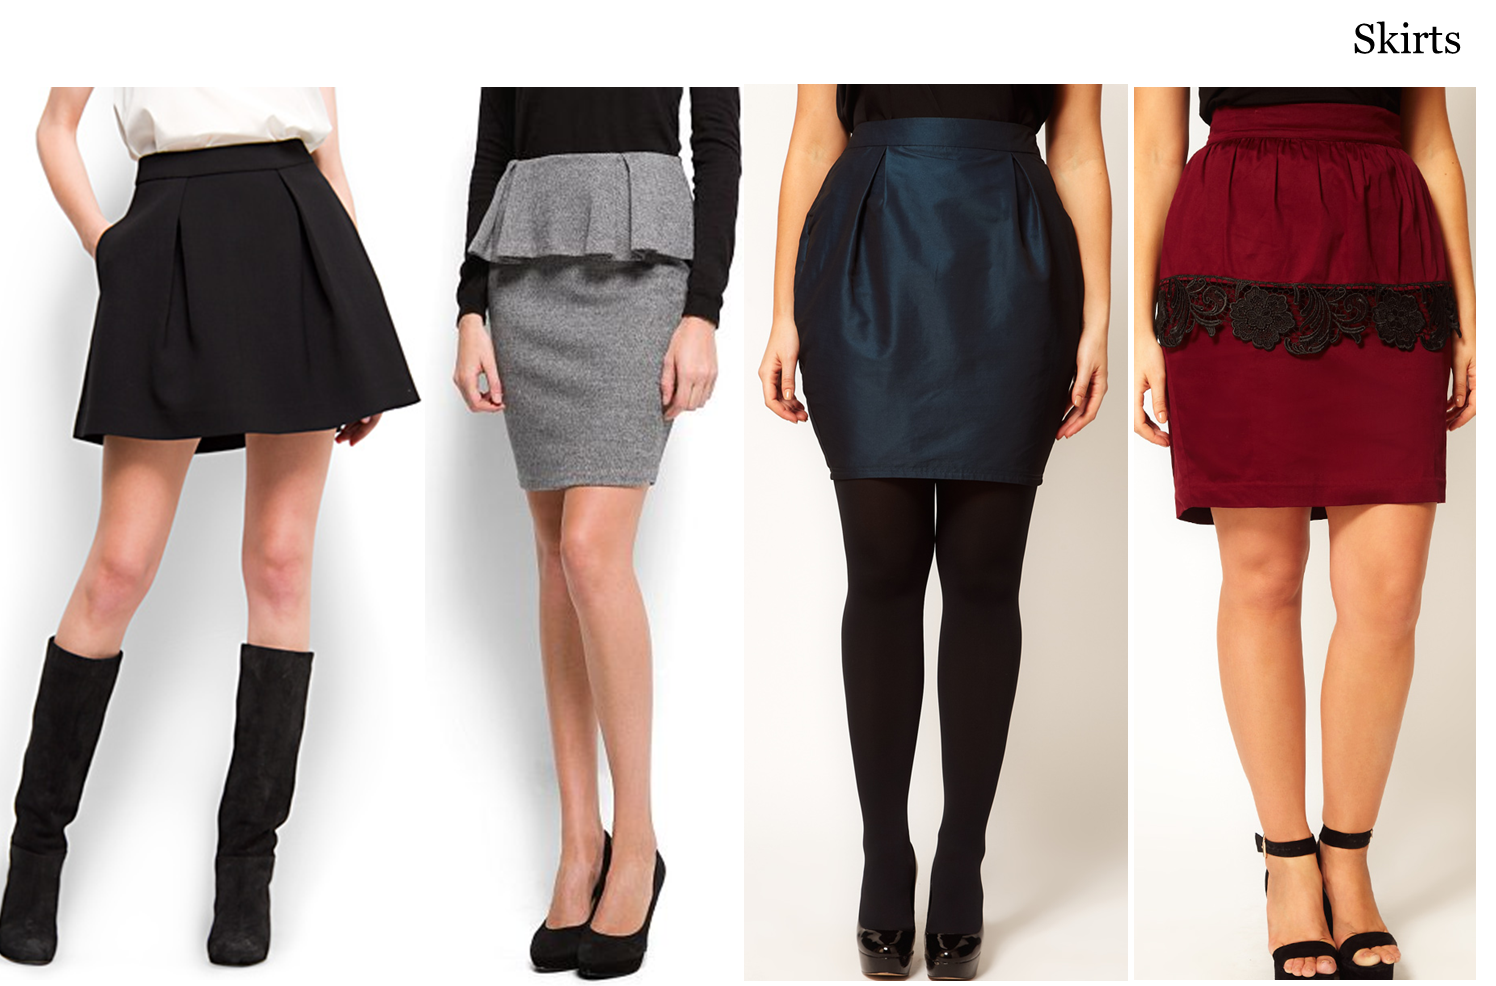 How to skirt a wear apple shape images